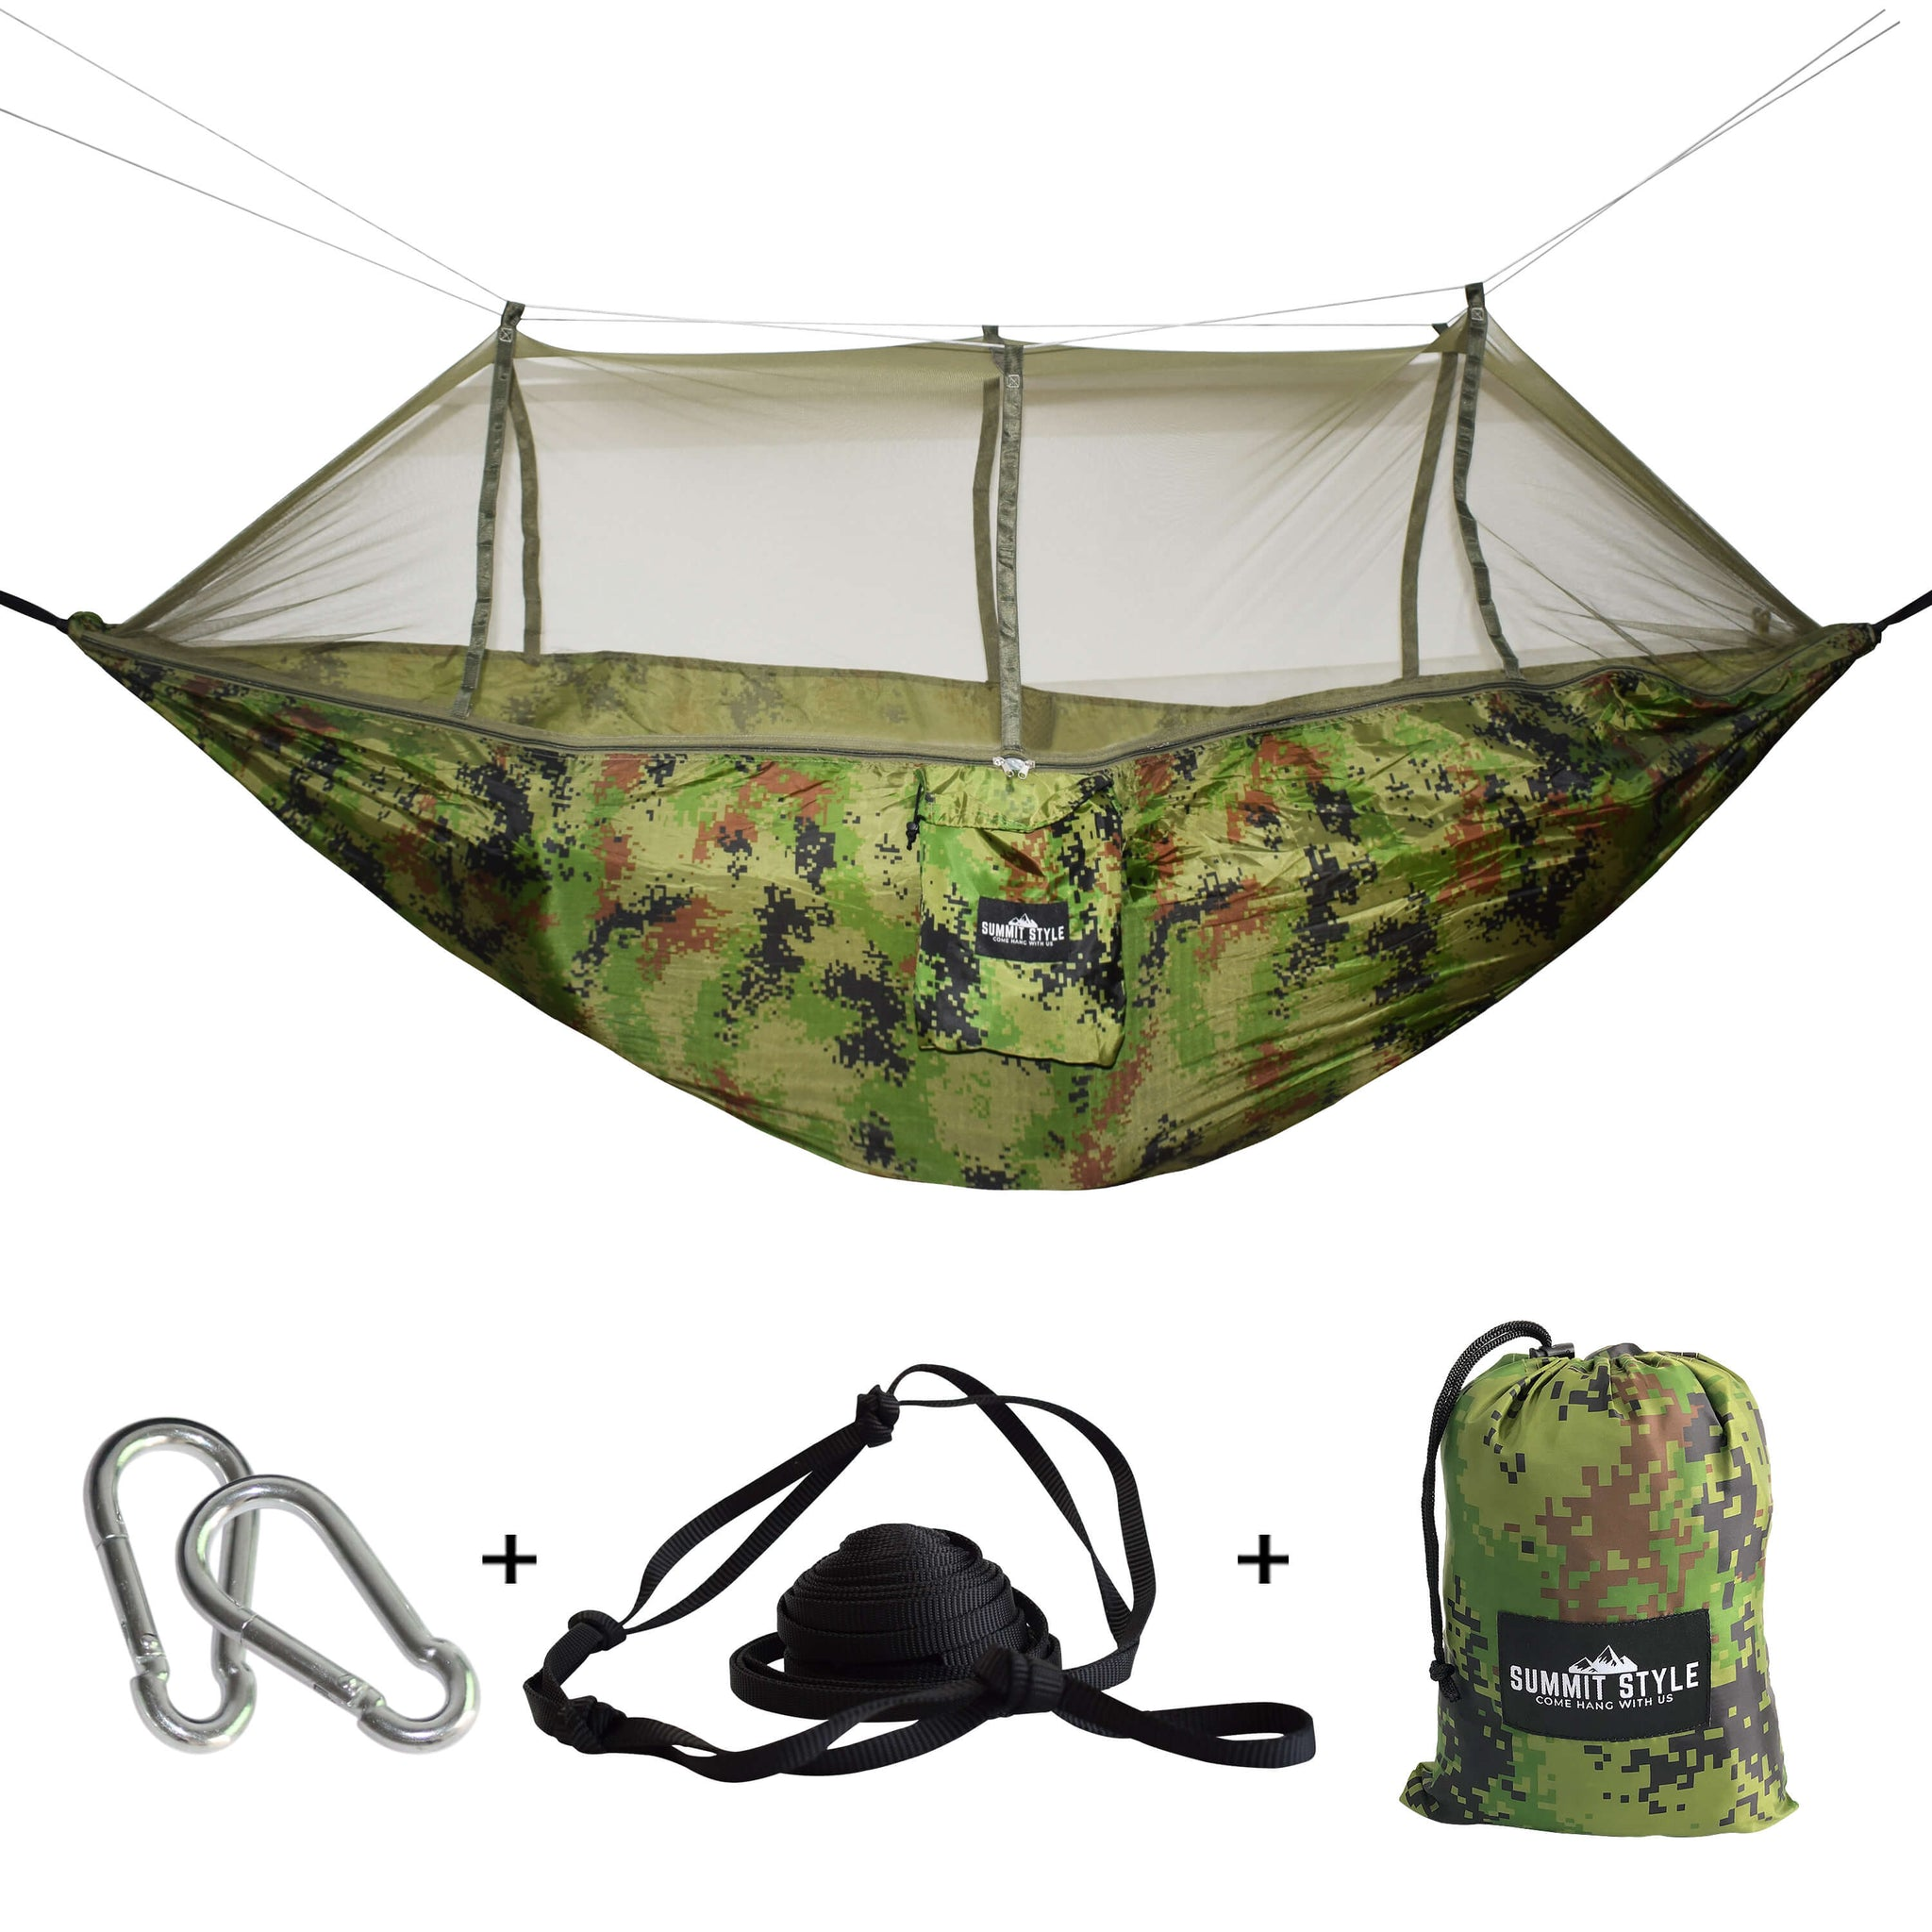 Summit Style's Nature Nest Hammock